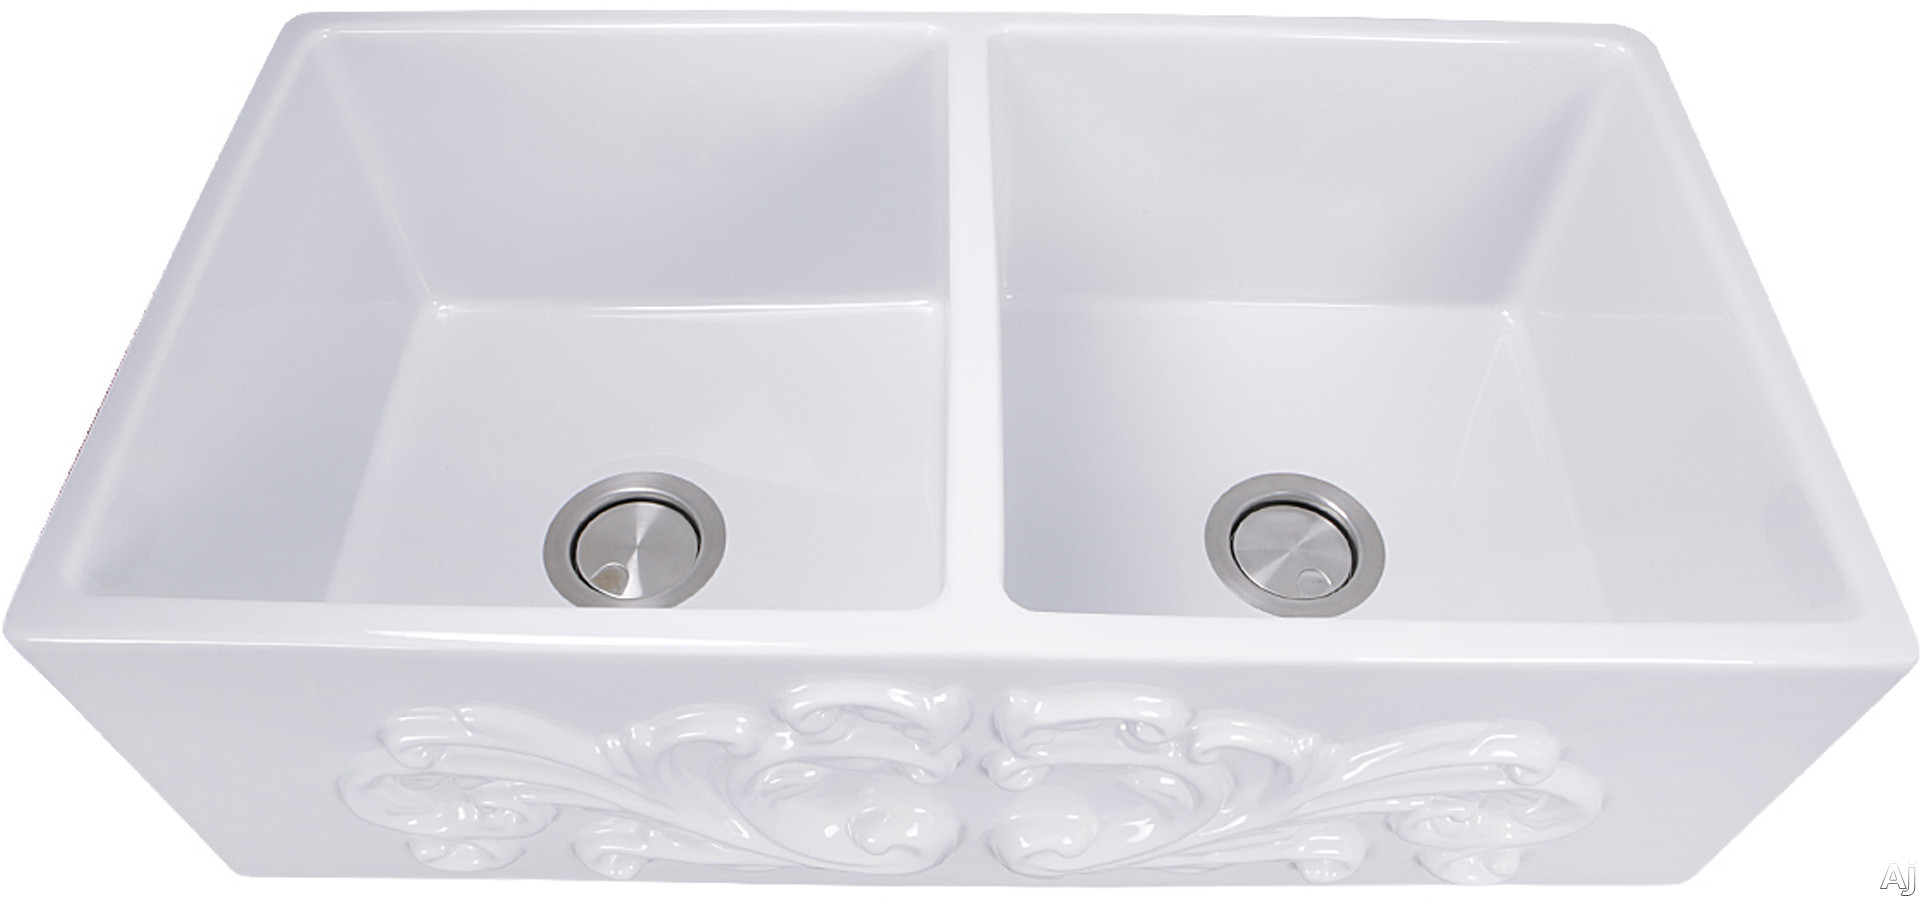 Nantucket Sinks Vineyard Collection FCFS3318DFILIGREE 33 Inch Double Bowl Farmhouse Fireclay Sink with Solid Fireclay Construction, Scratch Resistant and Filigree Apron